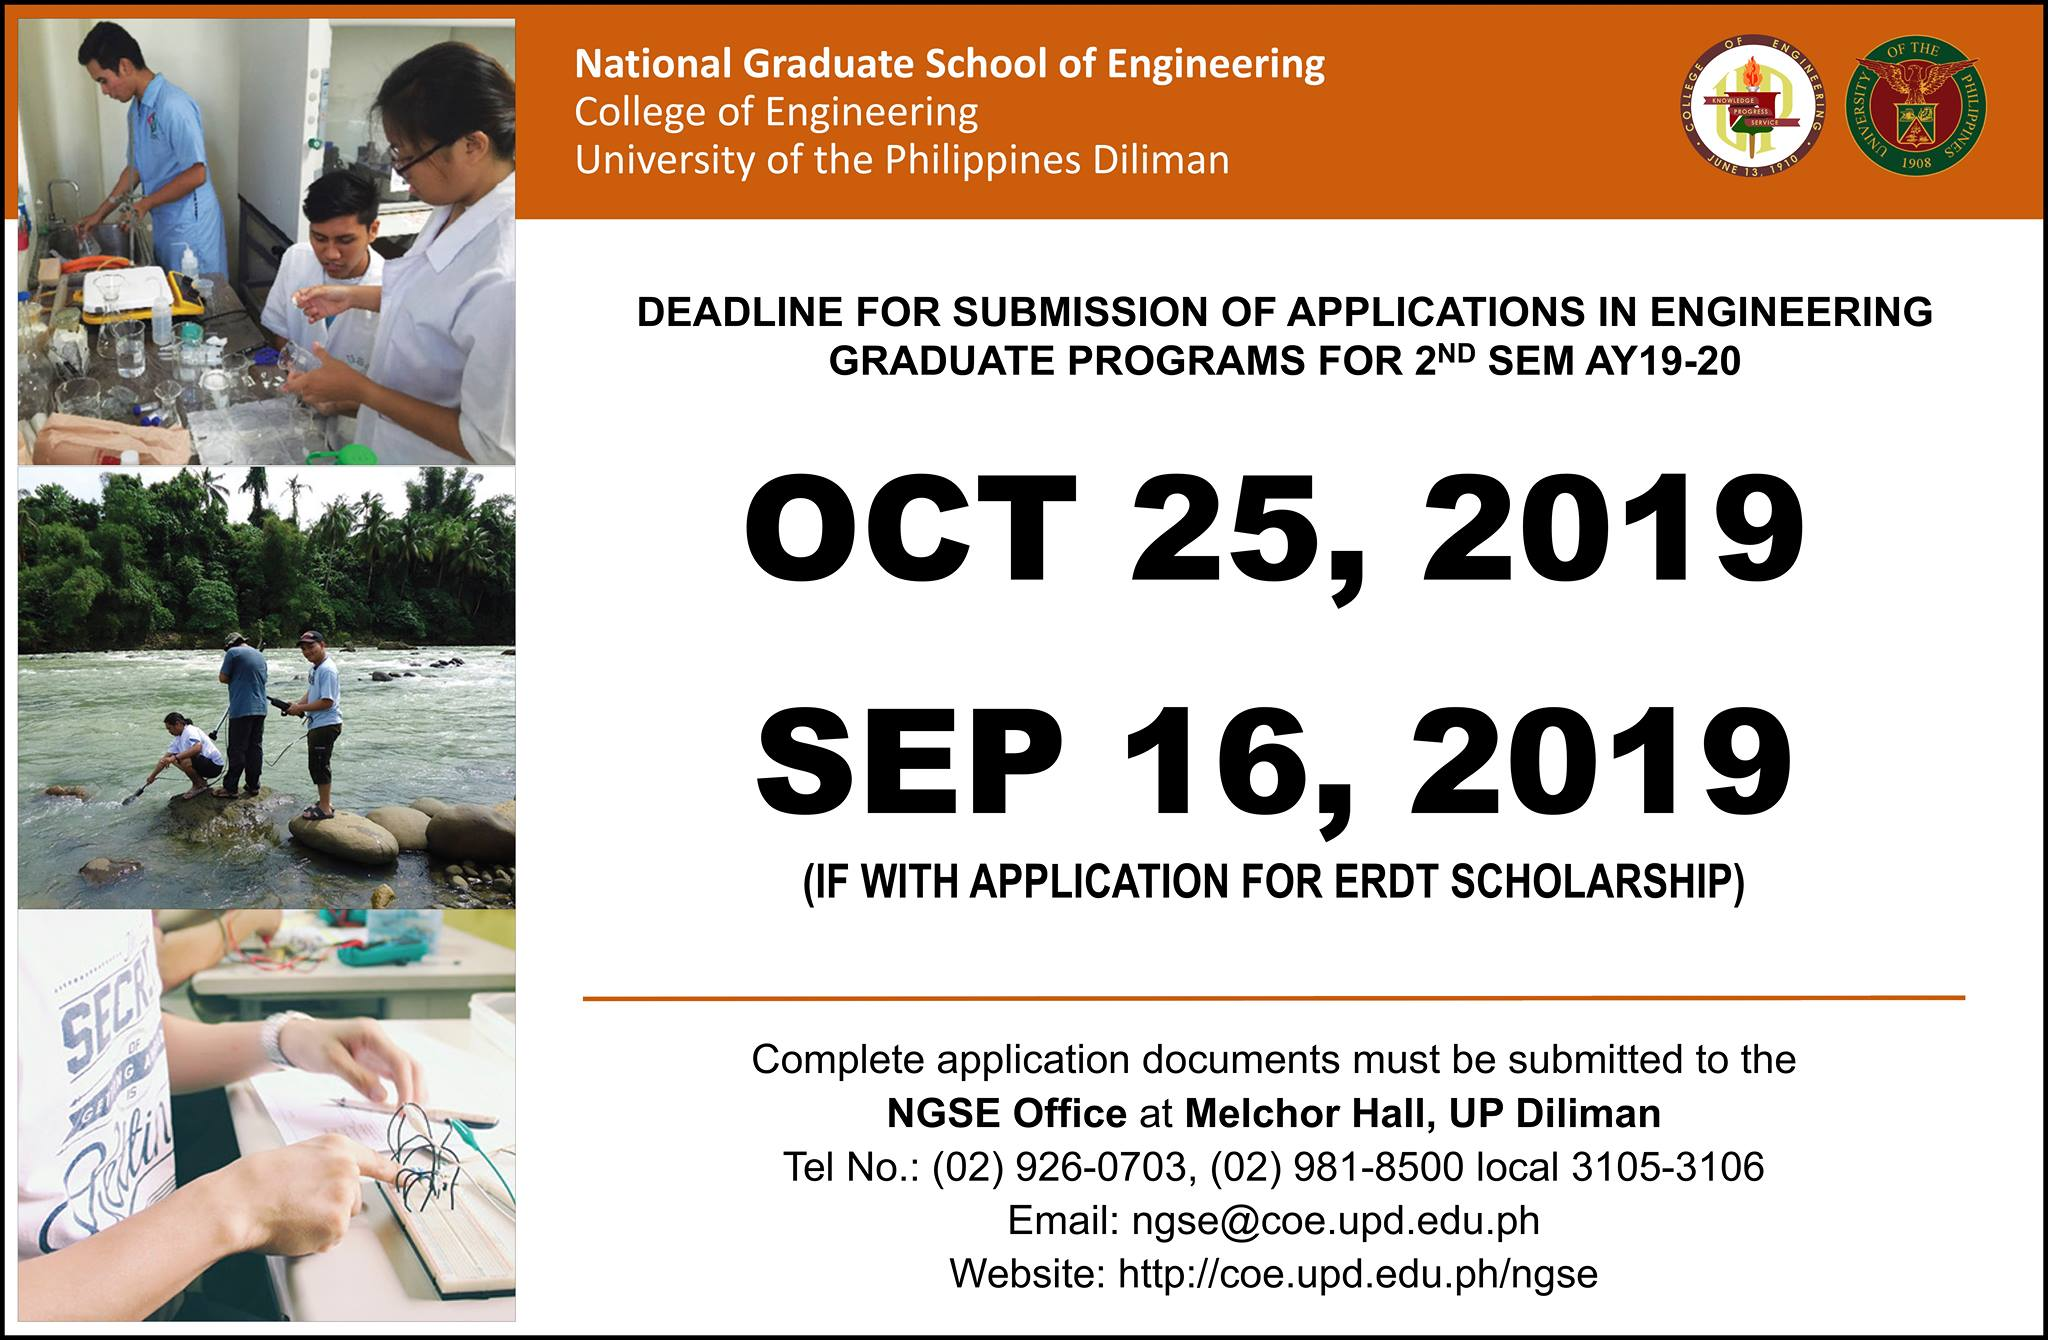 Deadline for Submission of Applications in Engineering Graduate Programs for 2nd Sem AY19-20